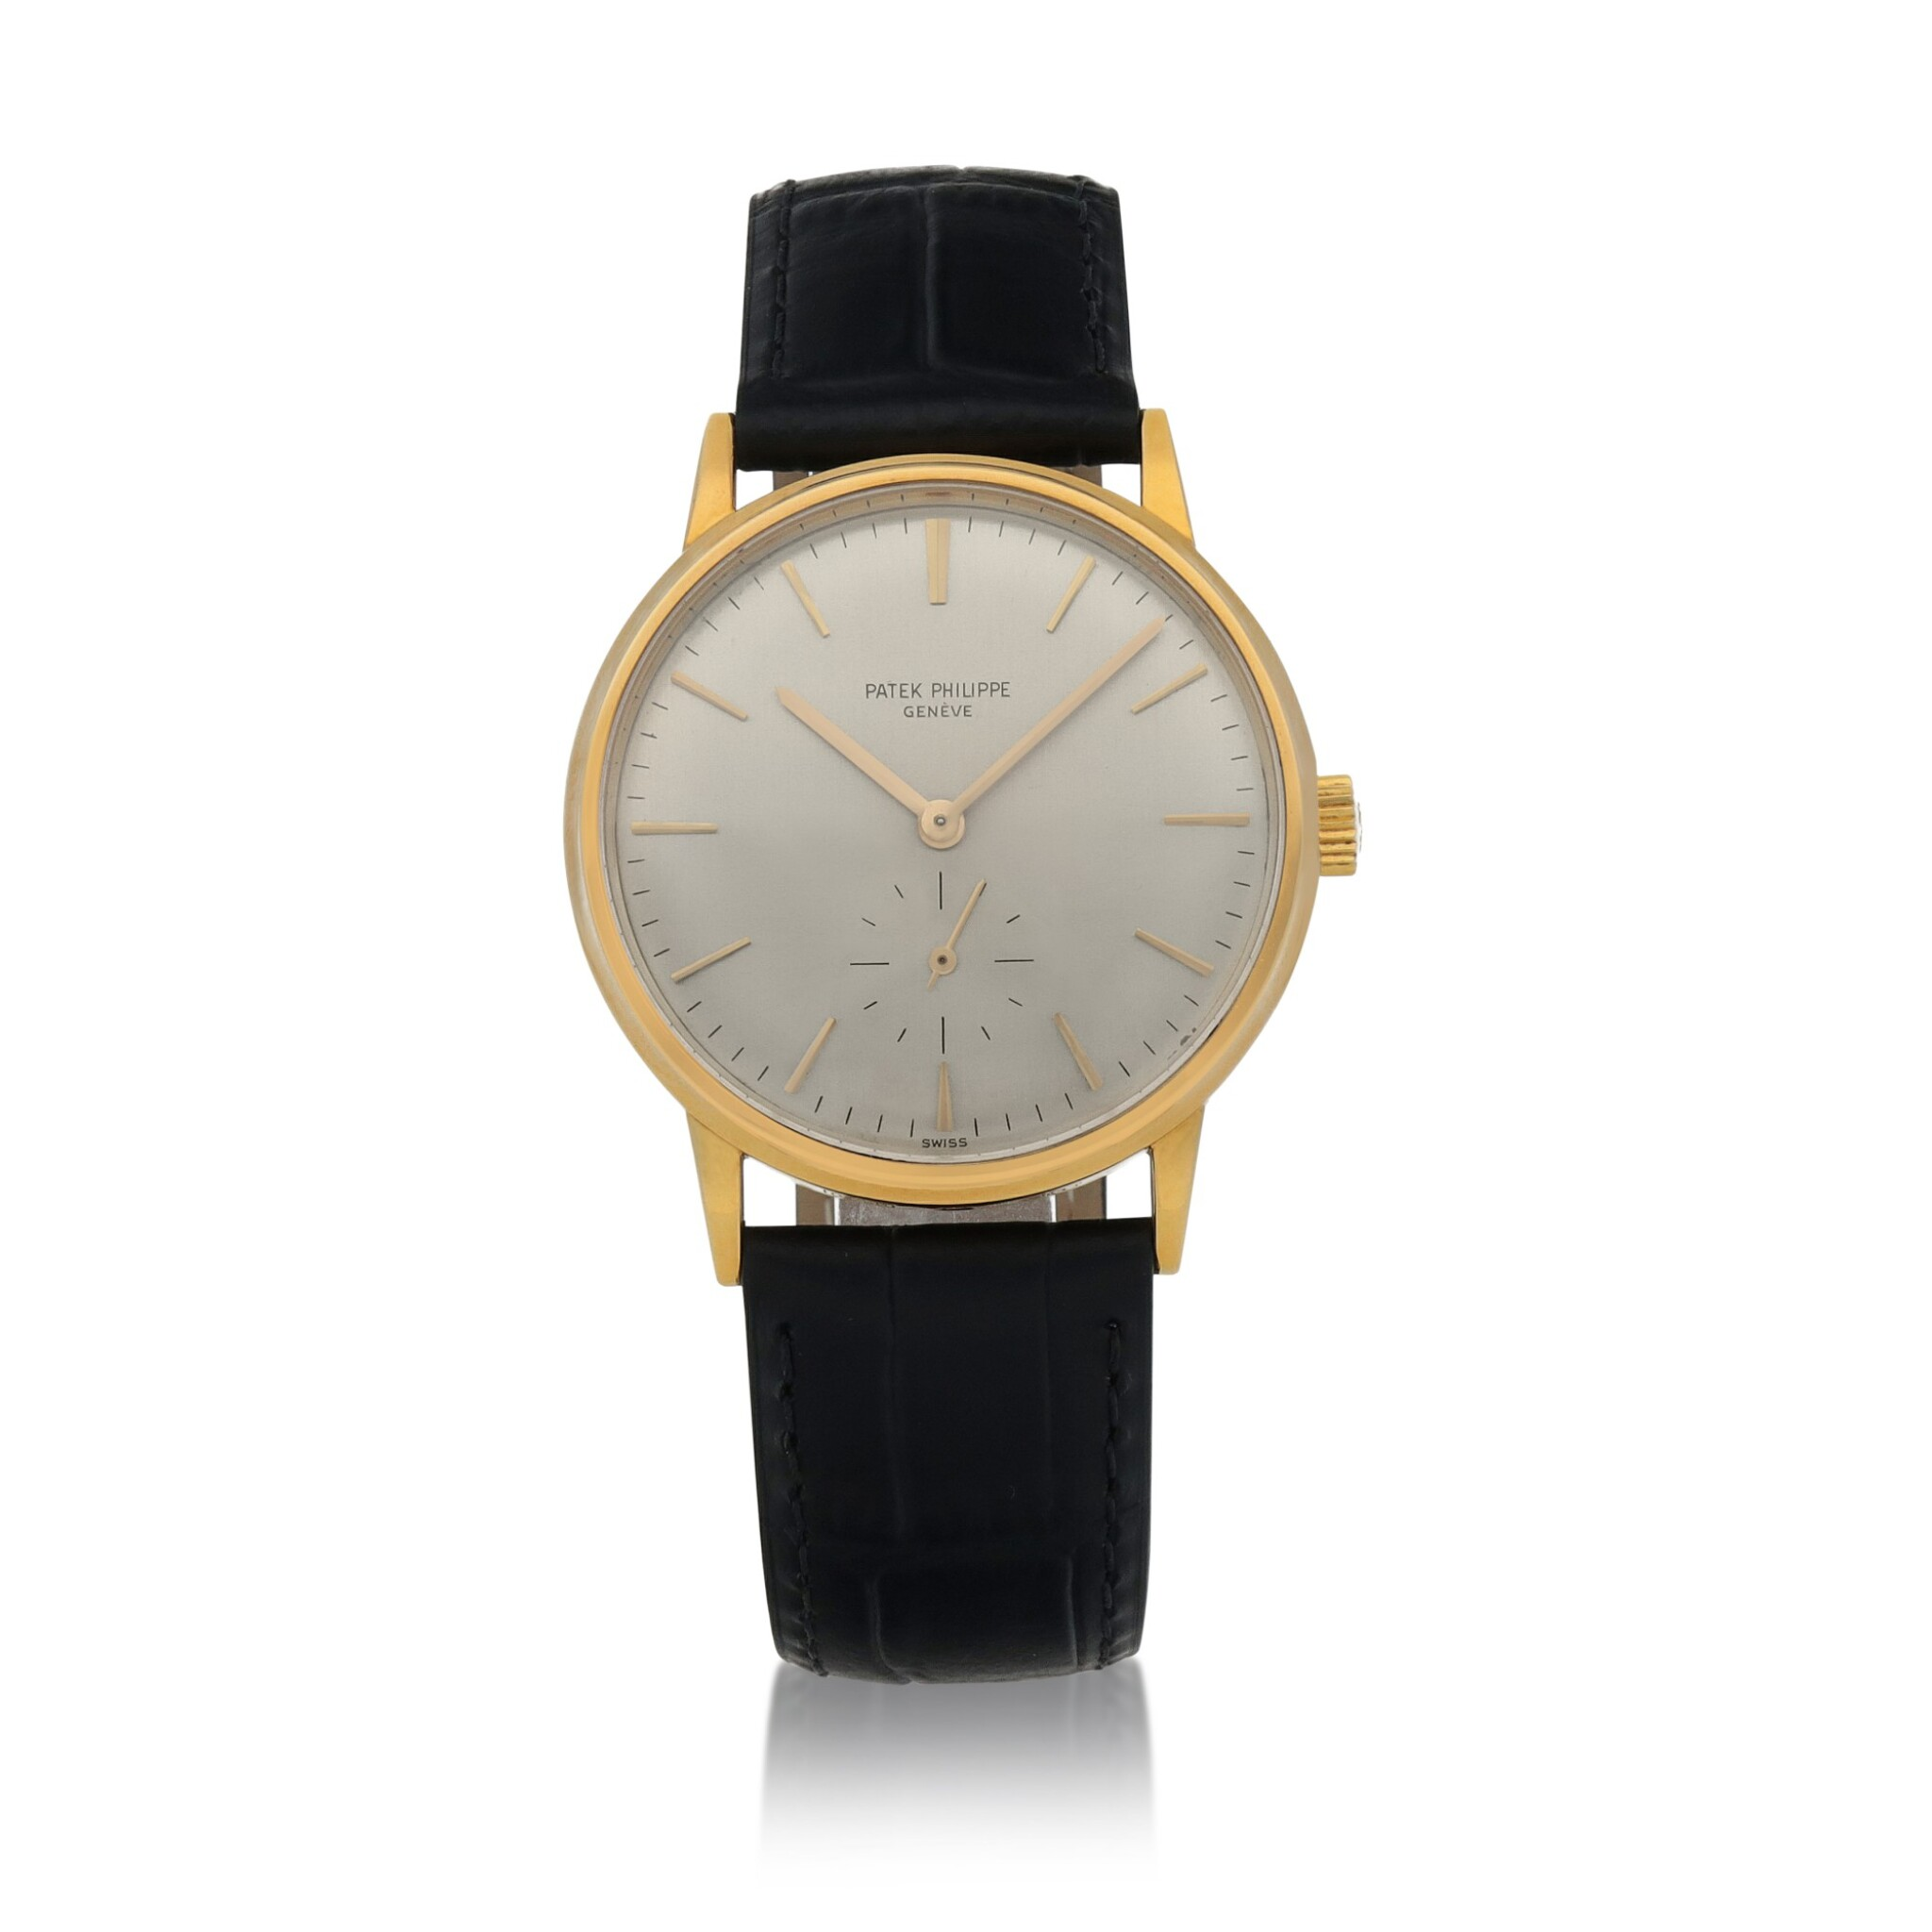 View full screen - View 1 of Lot 84. Ref. 3561 Yellow gold wristwatch Made in 1968 | 百達翡麗 3561型號黃金腕錶,1968年製.